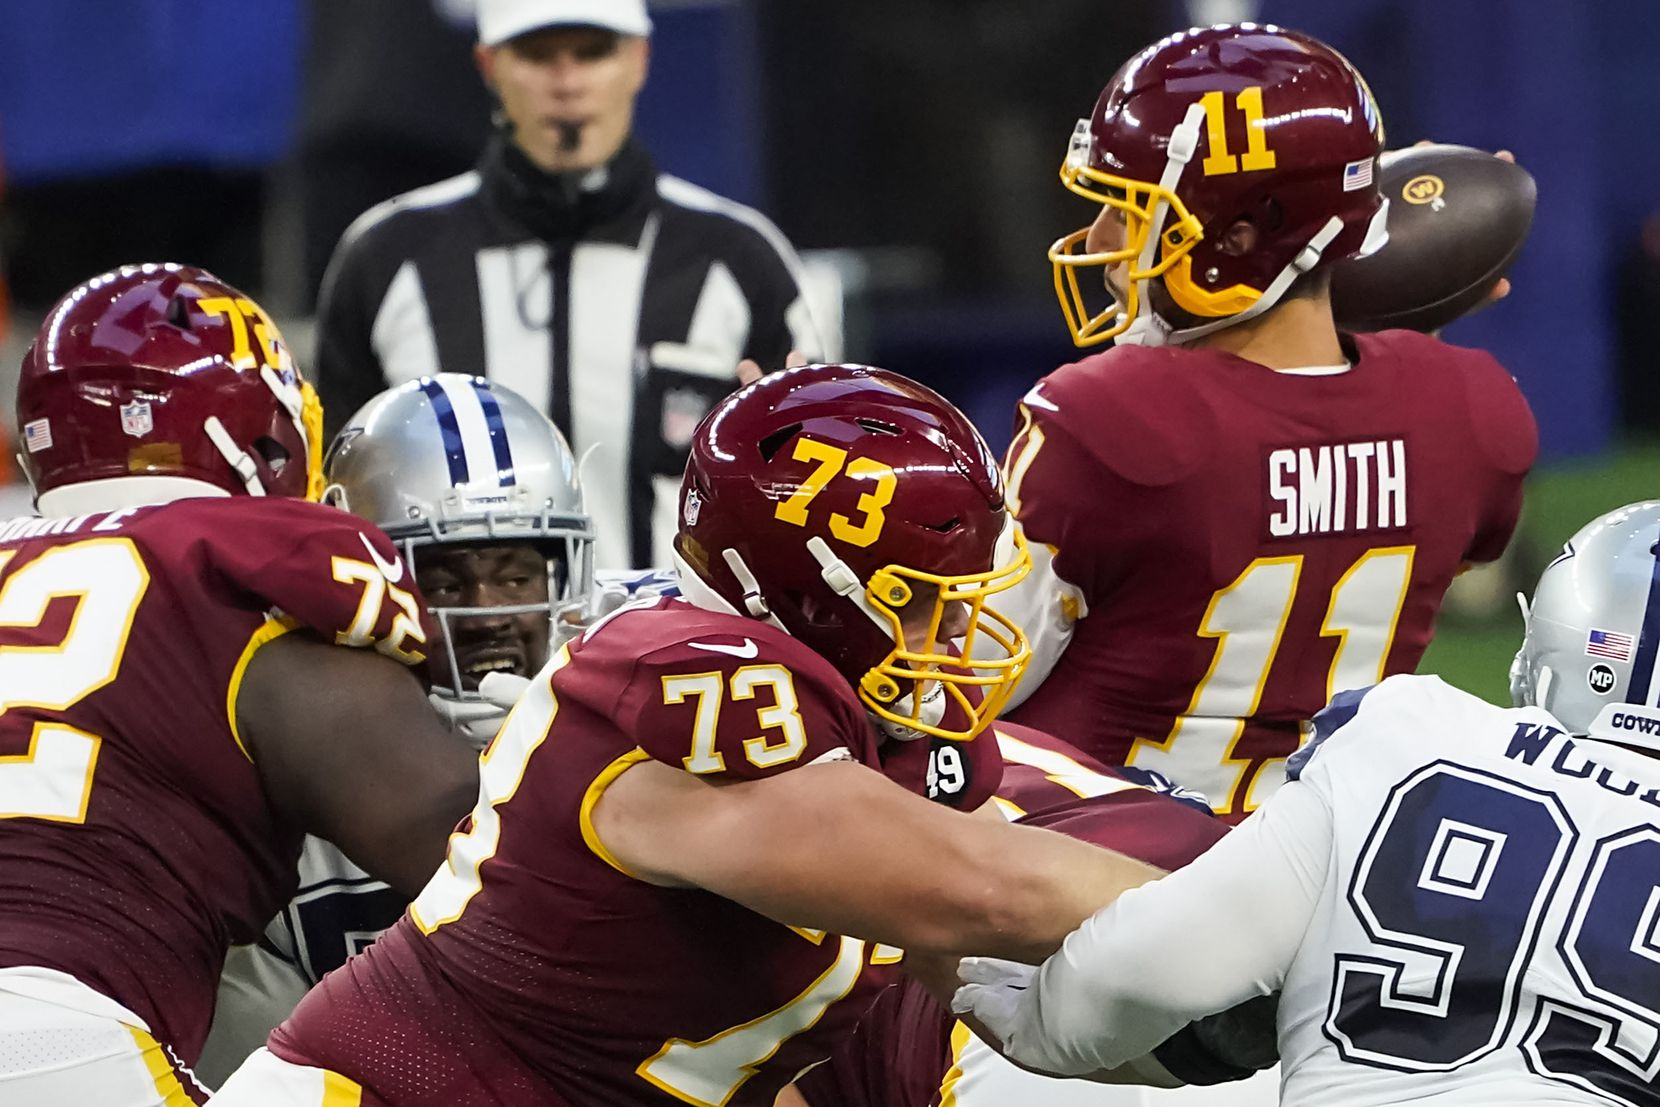 Washington Football Team quarterback Alex Smith (11) is sacked by Dallas Cowboys defensive end Randy Gregory during the second quarter of an NFL football game at AT&T Stadium on Thursday, Nov. 26, 2020, in Arlington. (Smiley N. Pool/The Dallas Morning News)